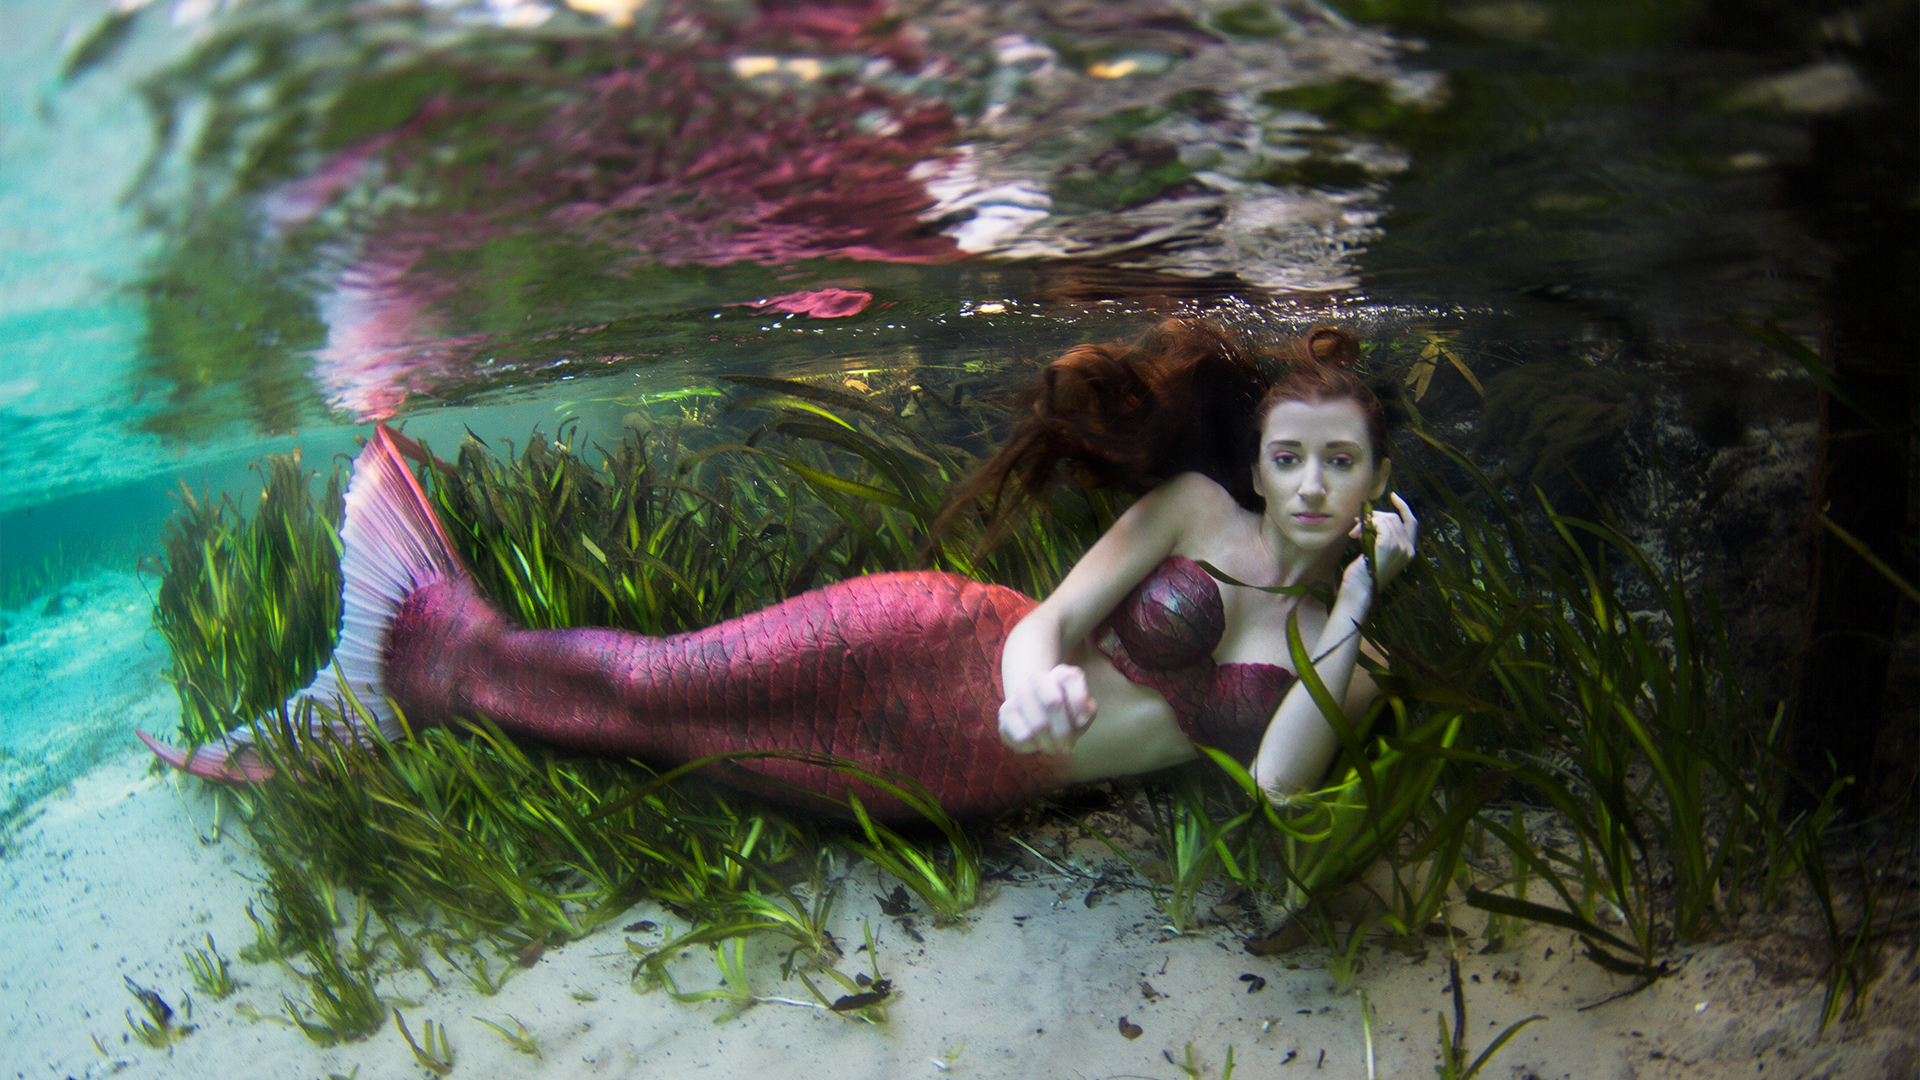 Welcome to the World of Mertailor! Swimmable Mermaid and Merman Tails for your enjoyment!